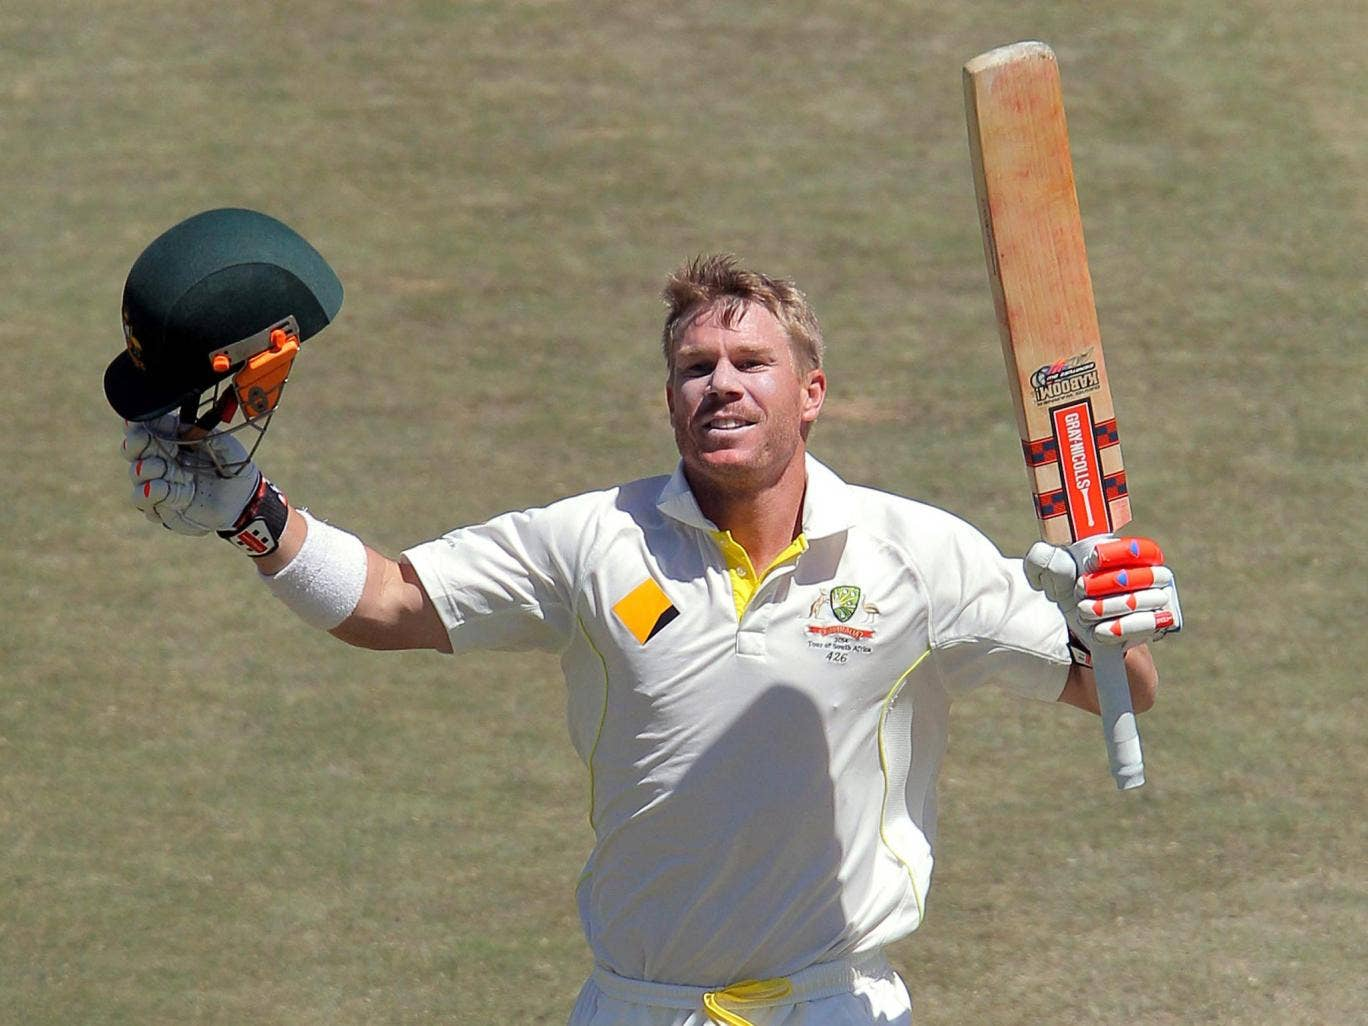 David Warner has benefitted from Australia's more relaxed approach to the game